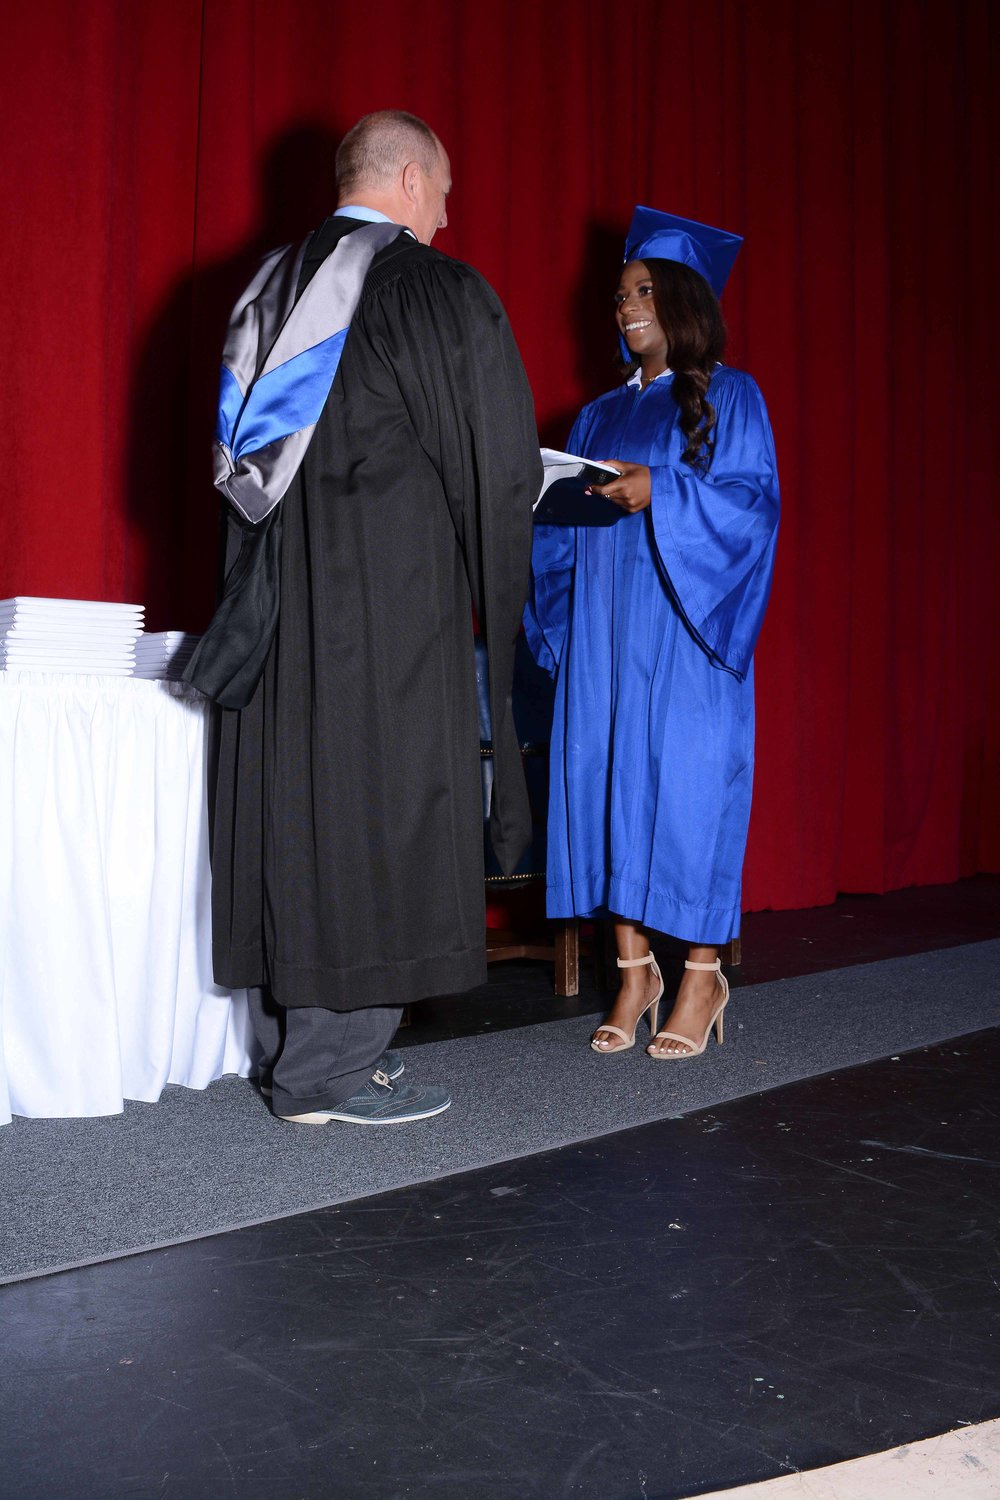 May14 Commencement107.jpg